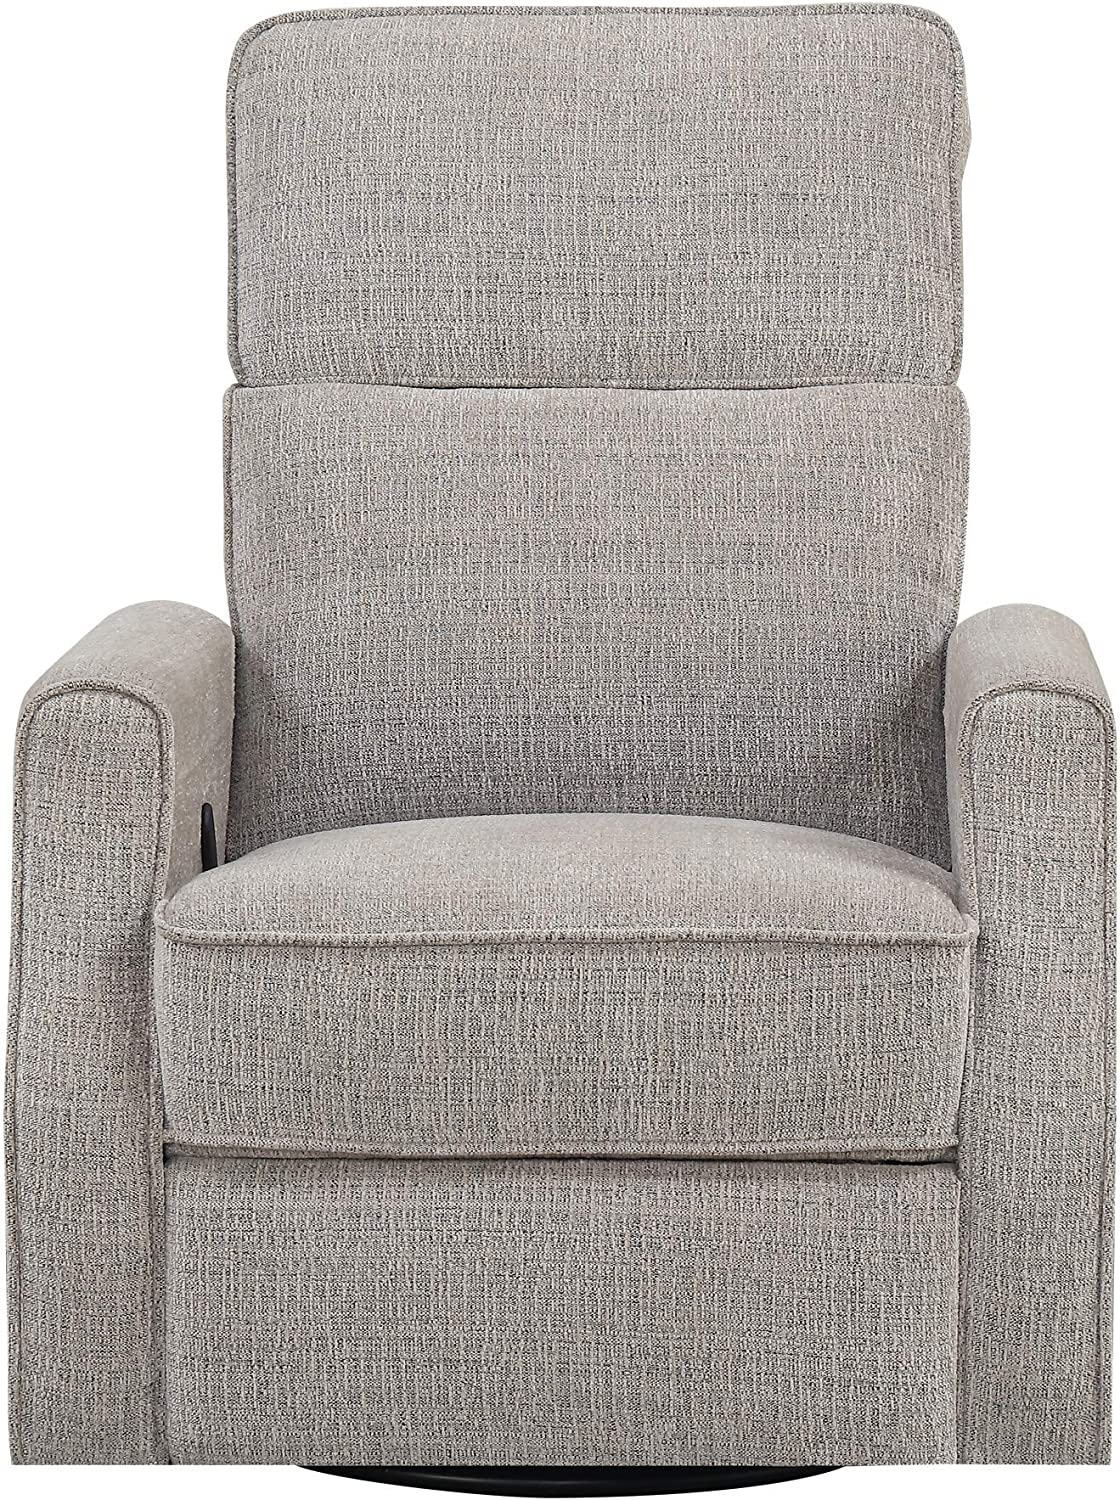 Emerald Home Furnishings Tabor Wheat Swivel Gliding Recliner